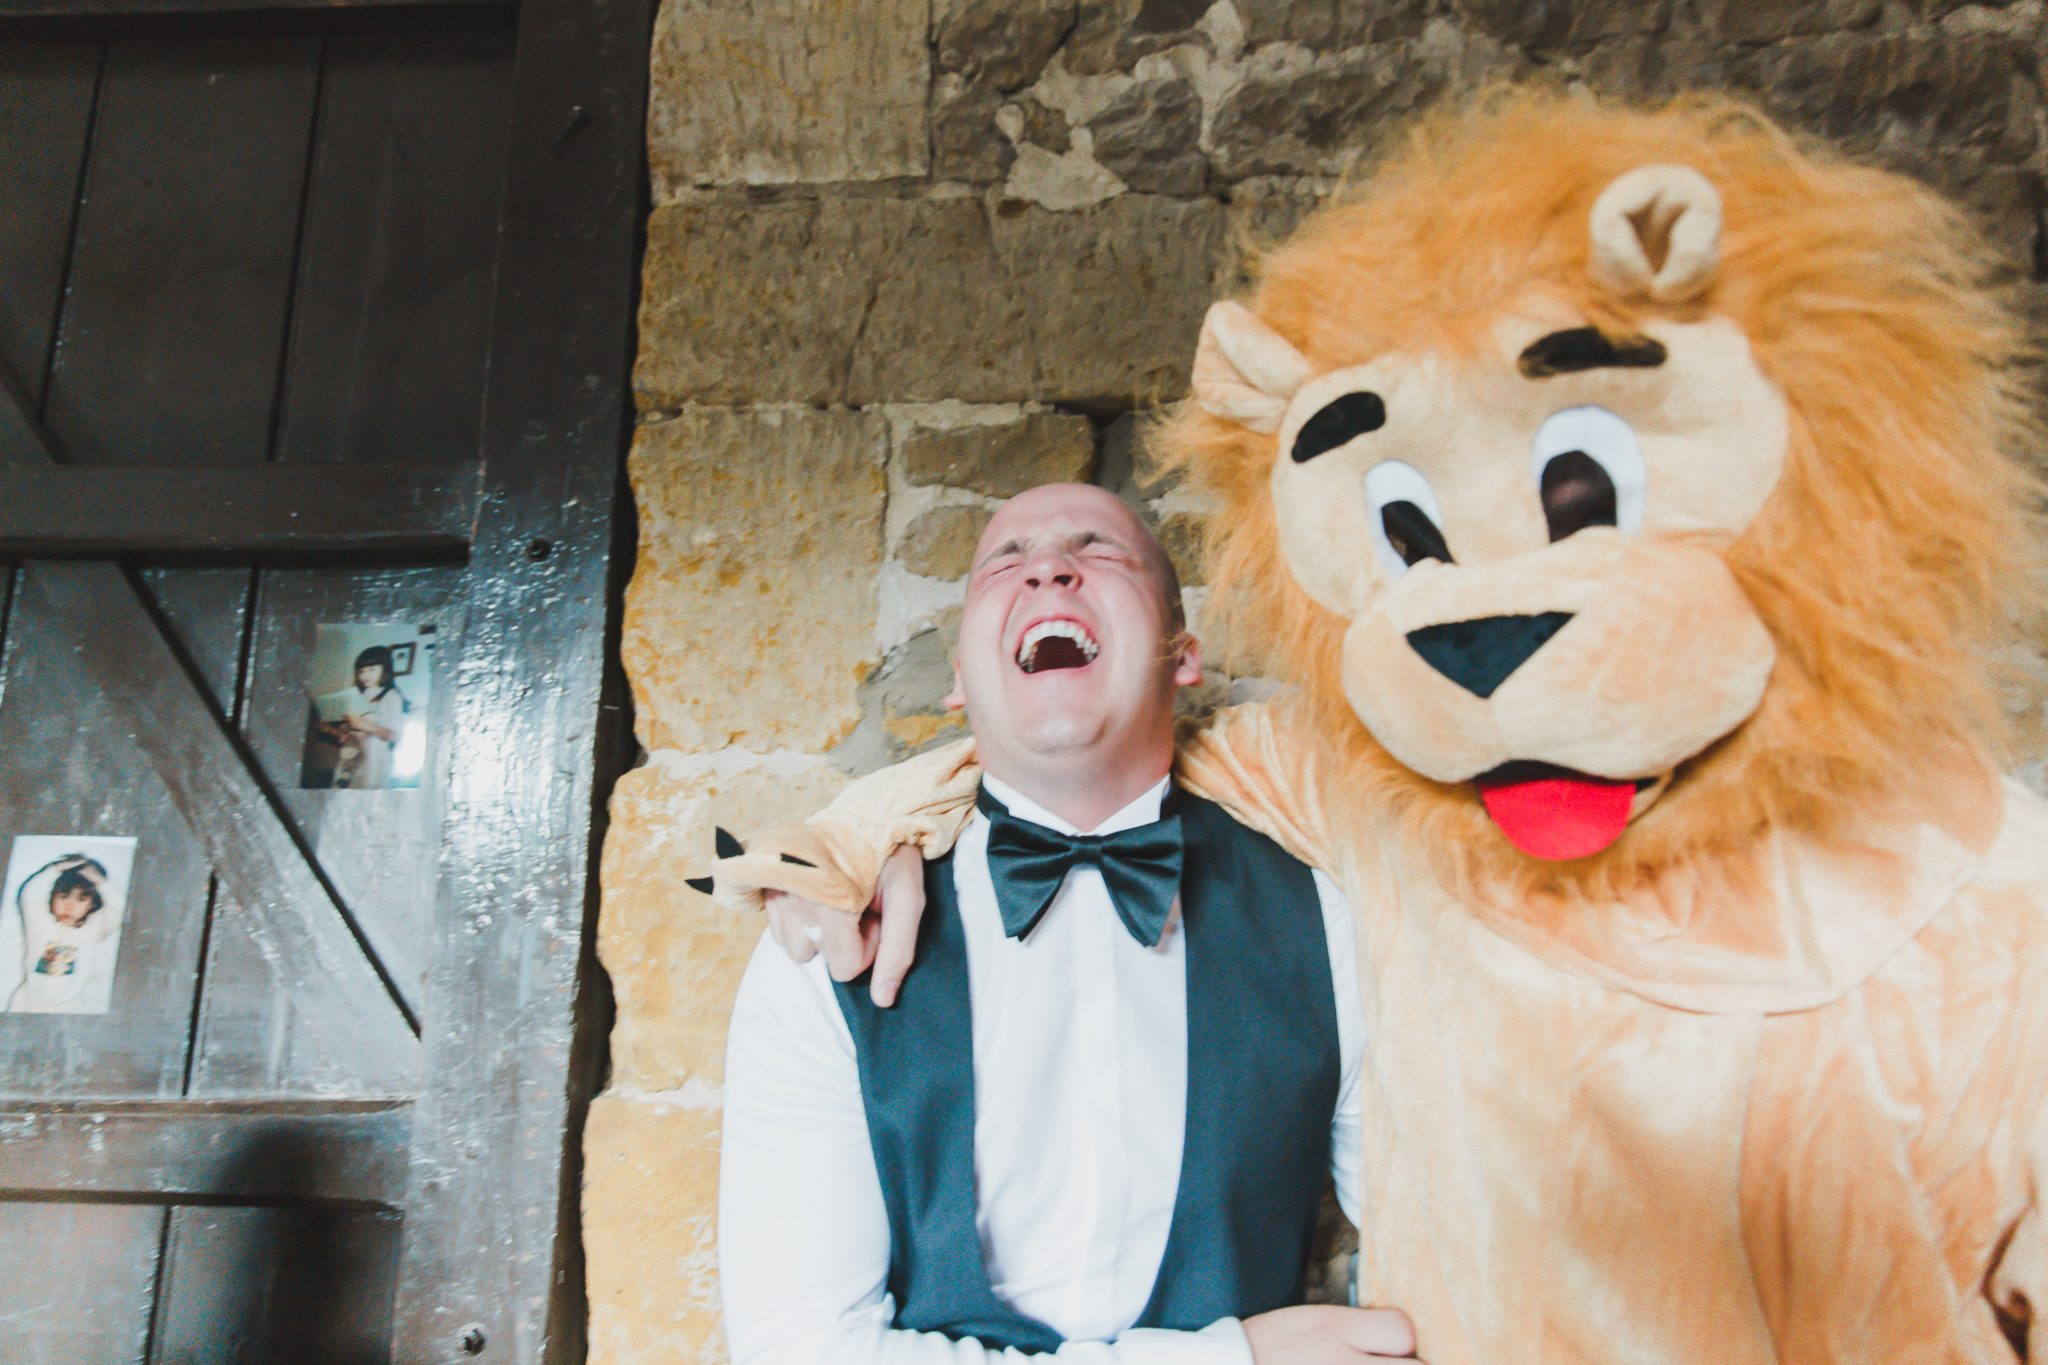 Groom laughing very loudly